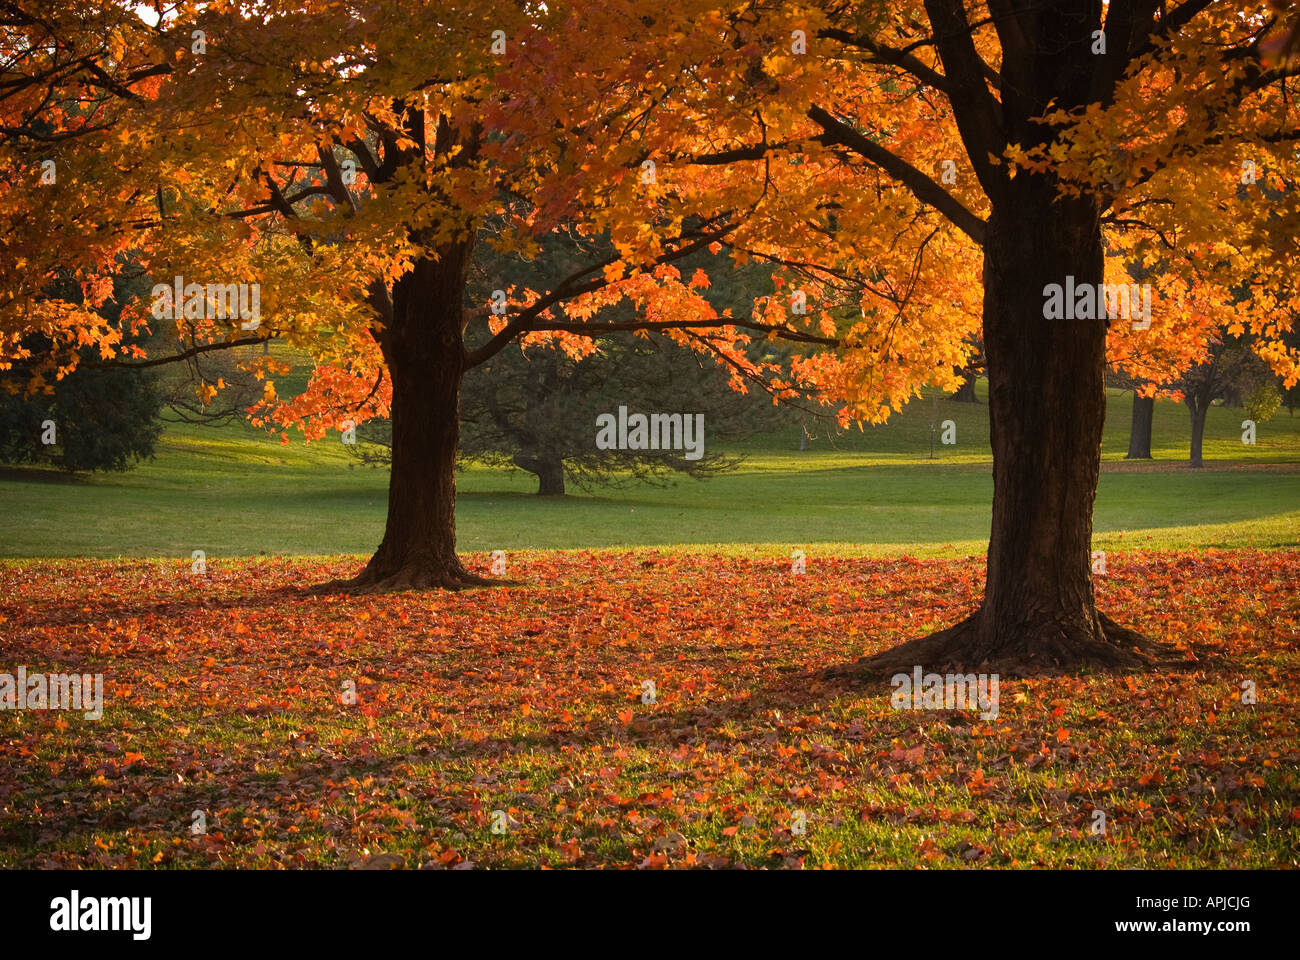 Maple trees in Park - Stock Image